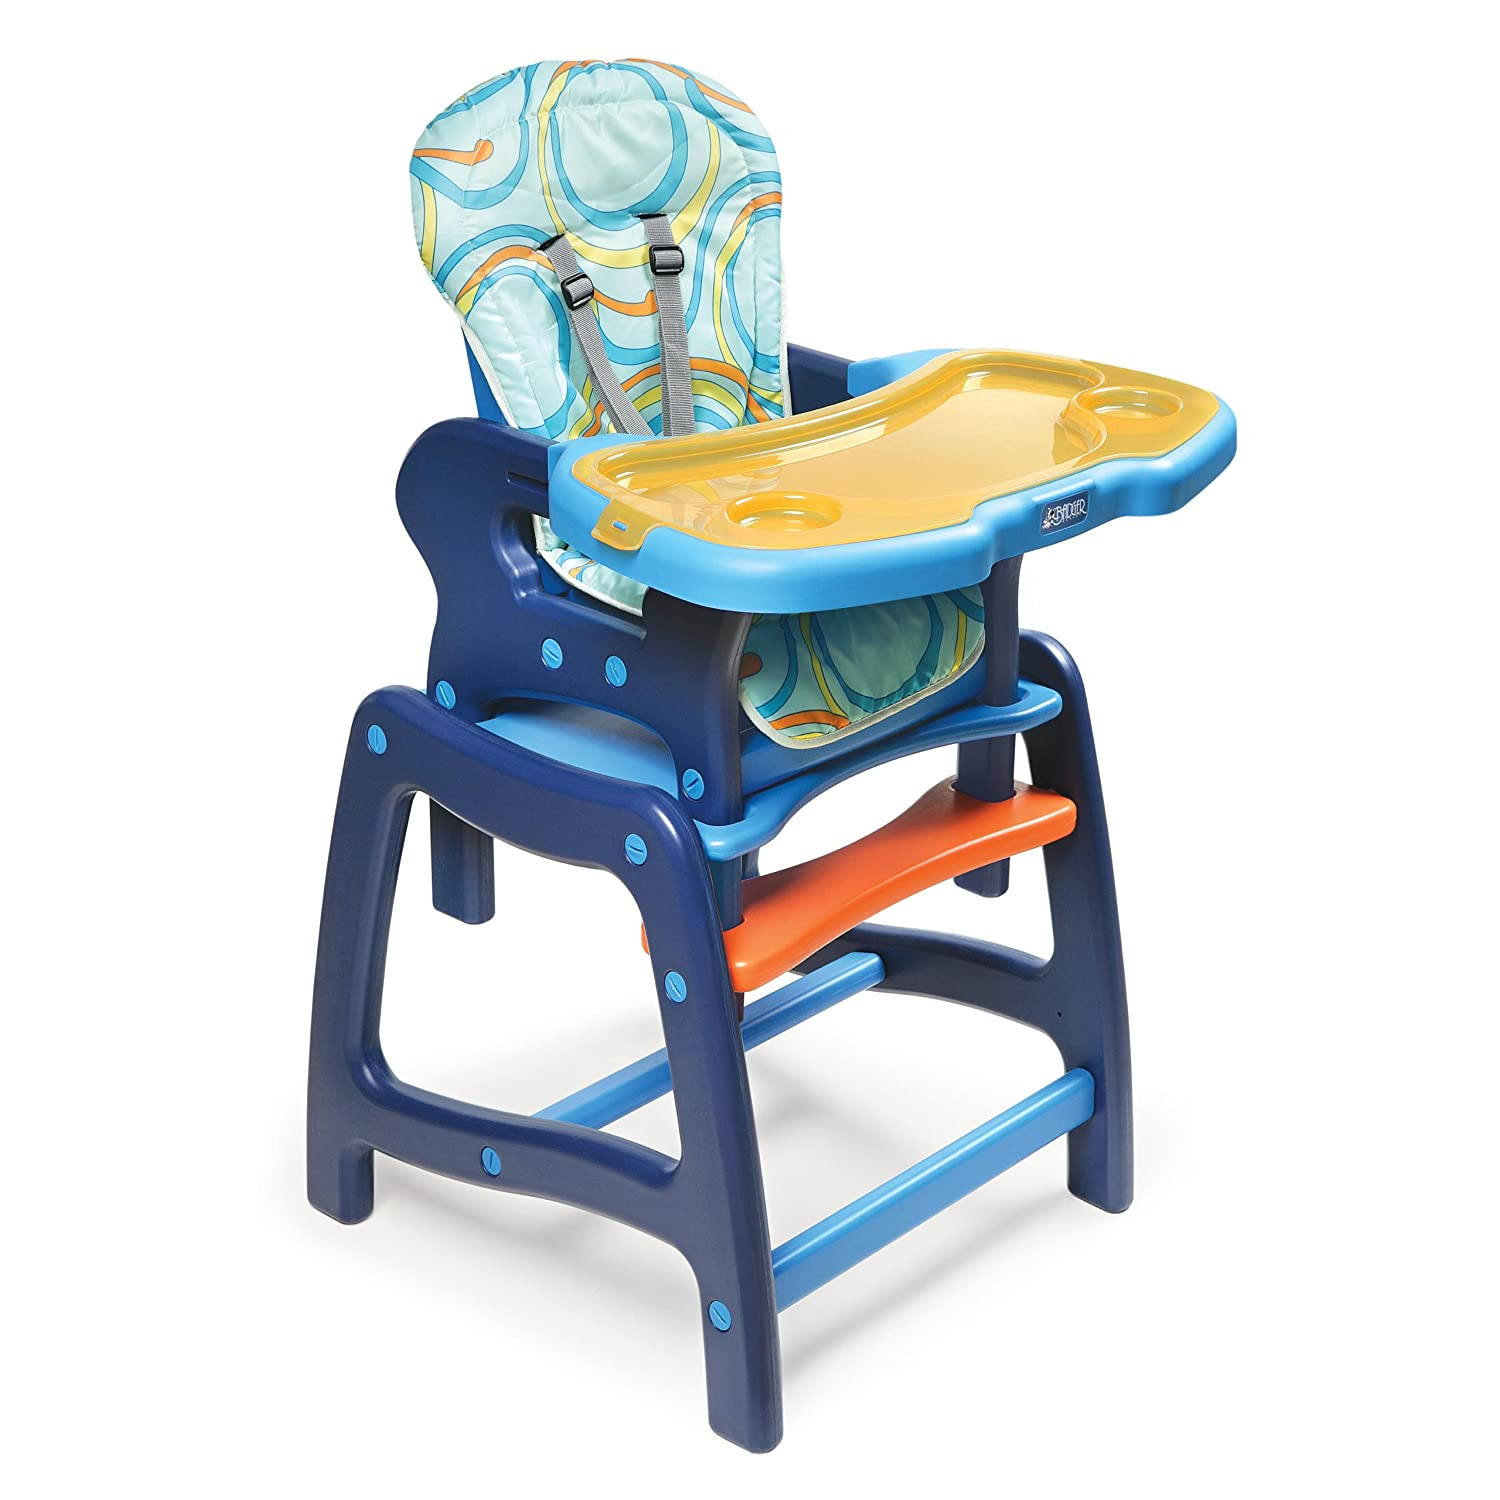 Amazon.com: Highchairs - Highchairs & Booster Seats: Baby Products